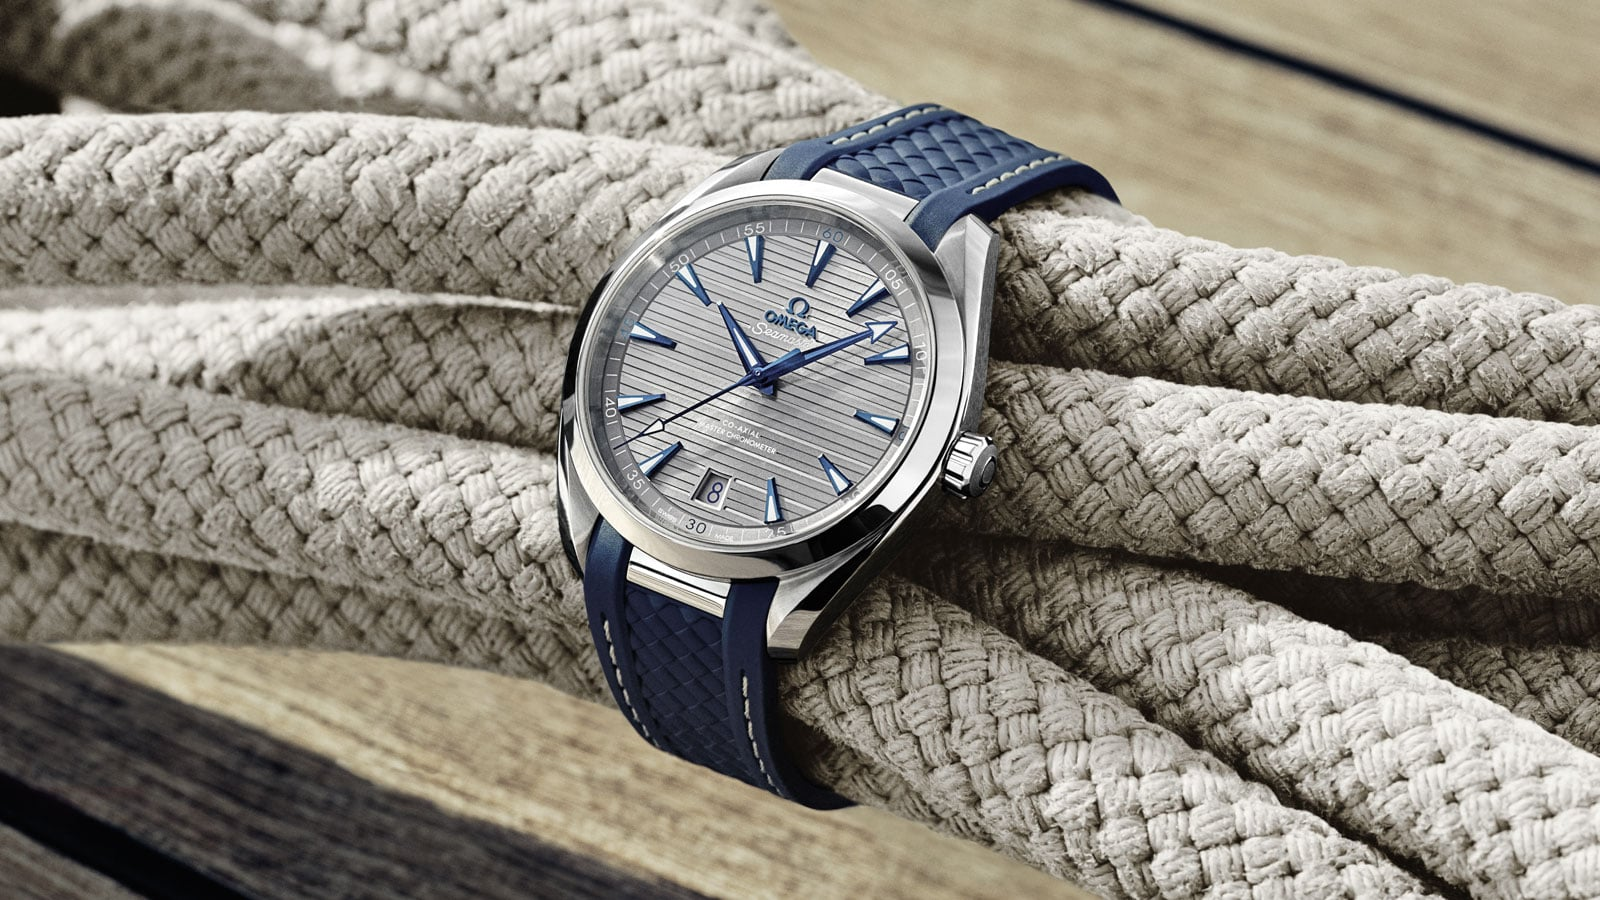 Seamaster Aqua Terra 150m Gents' Collection - Slide 1 - 33818